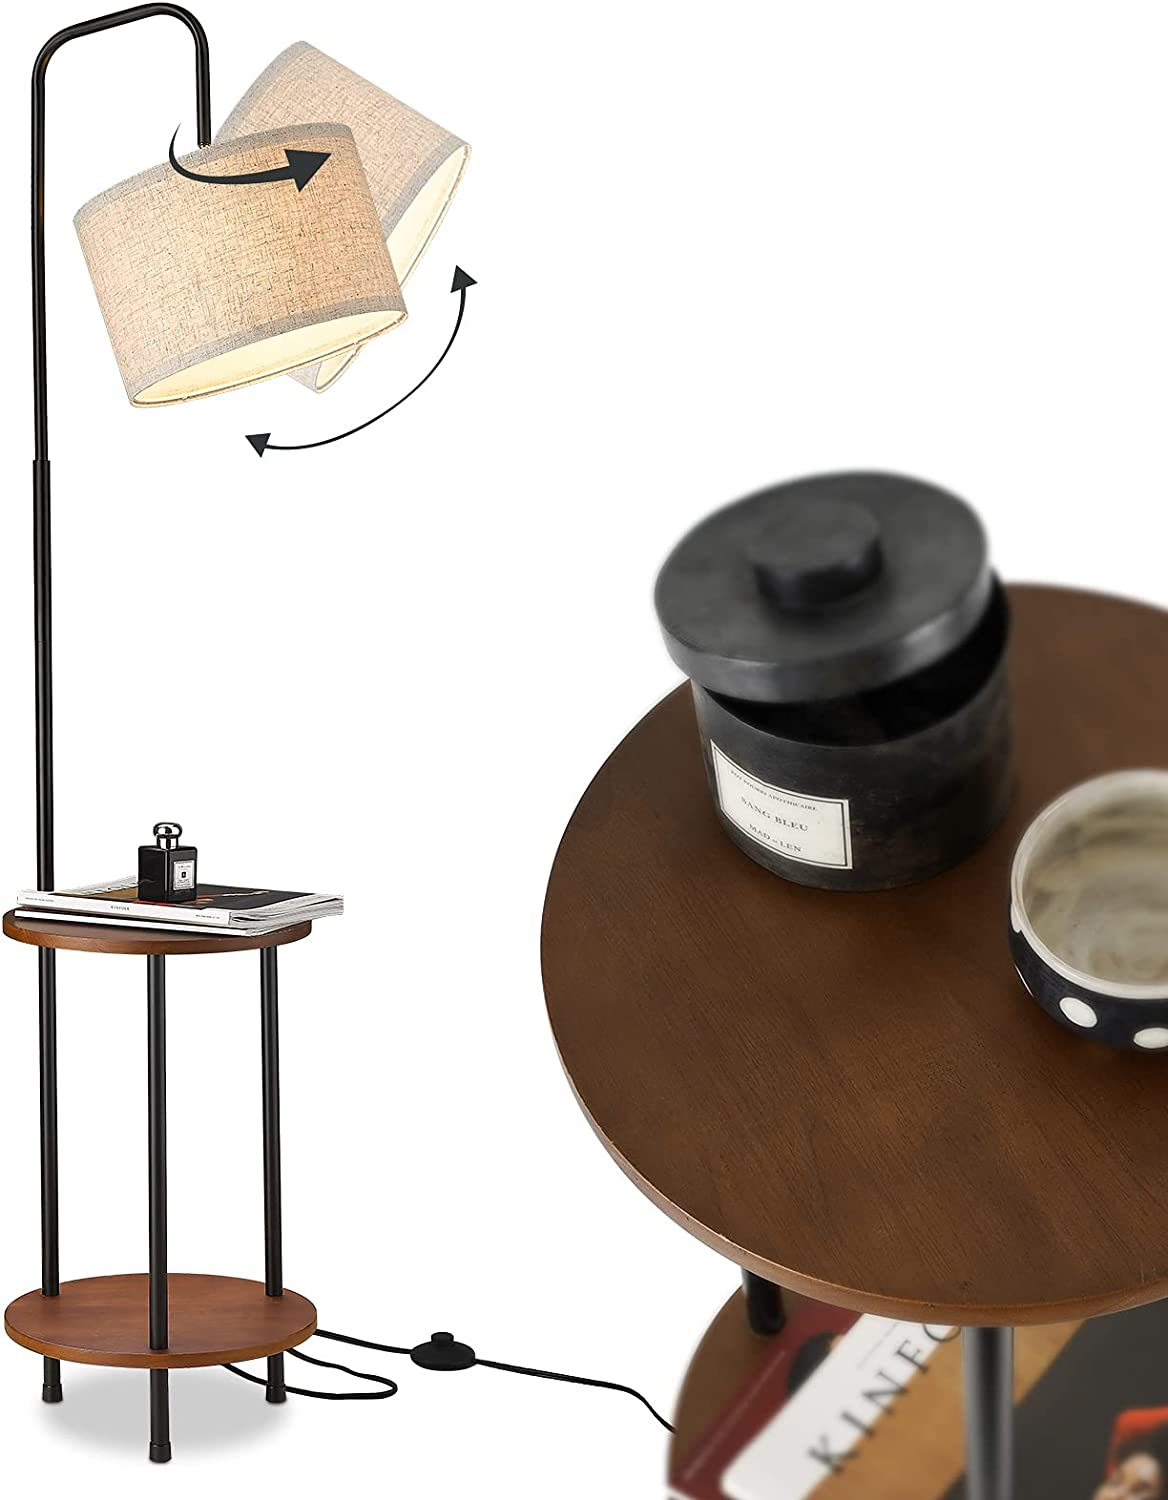 ELYONA Wood Floor Lamp, Nightstand Table Lamp for Bedroom & Living Room, Mid Century Modern Matte Floor Lamp with End Table for Farmhouse, Industrial Tall Pole Reading Standing Light for Office